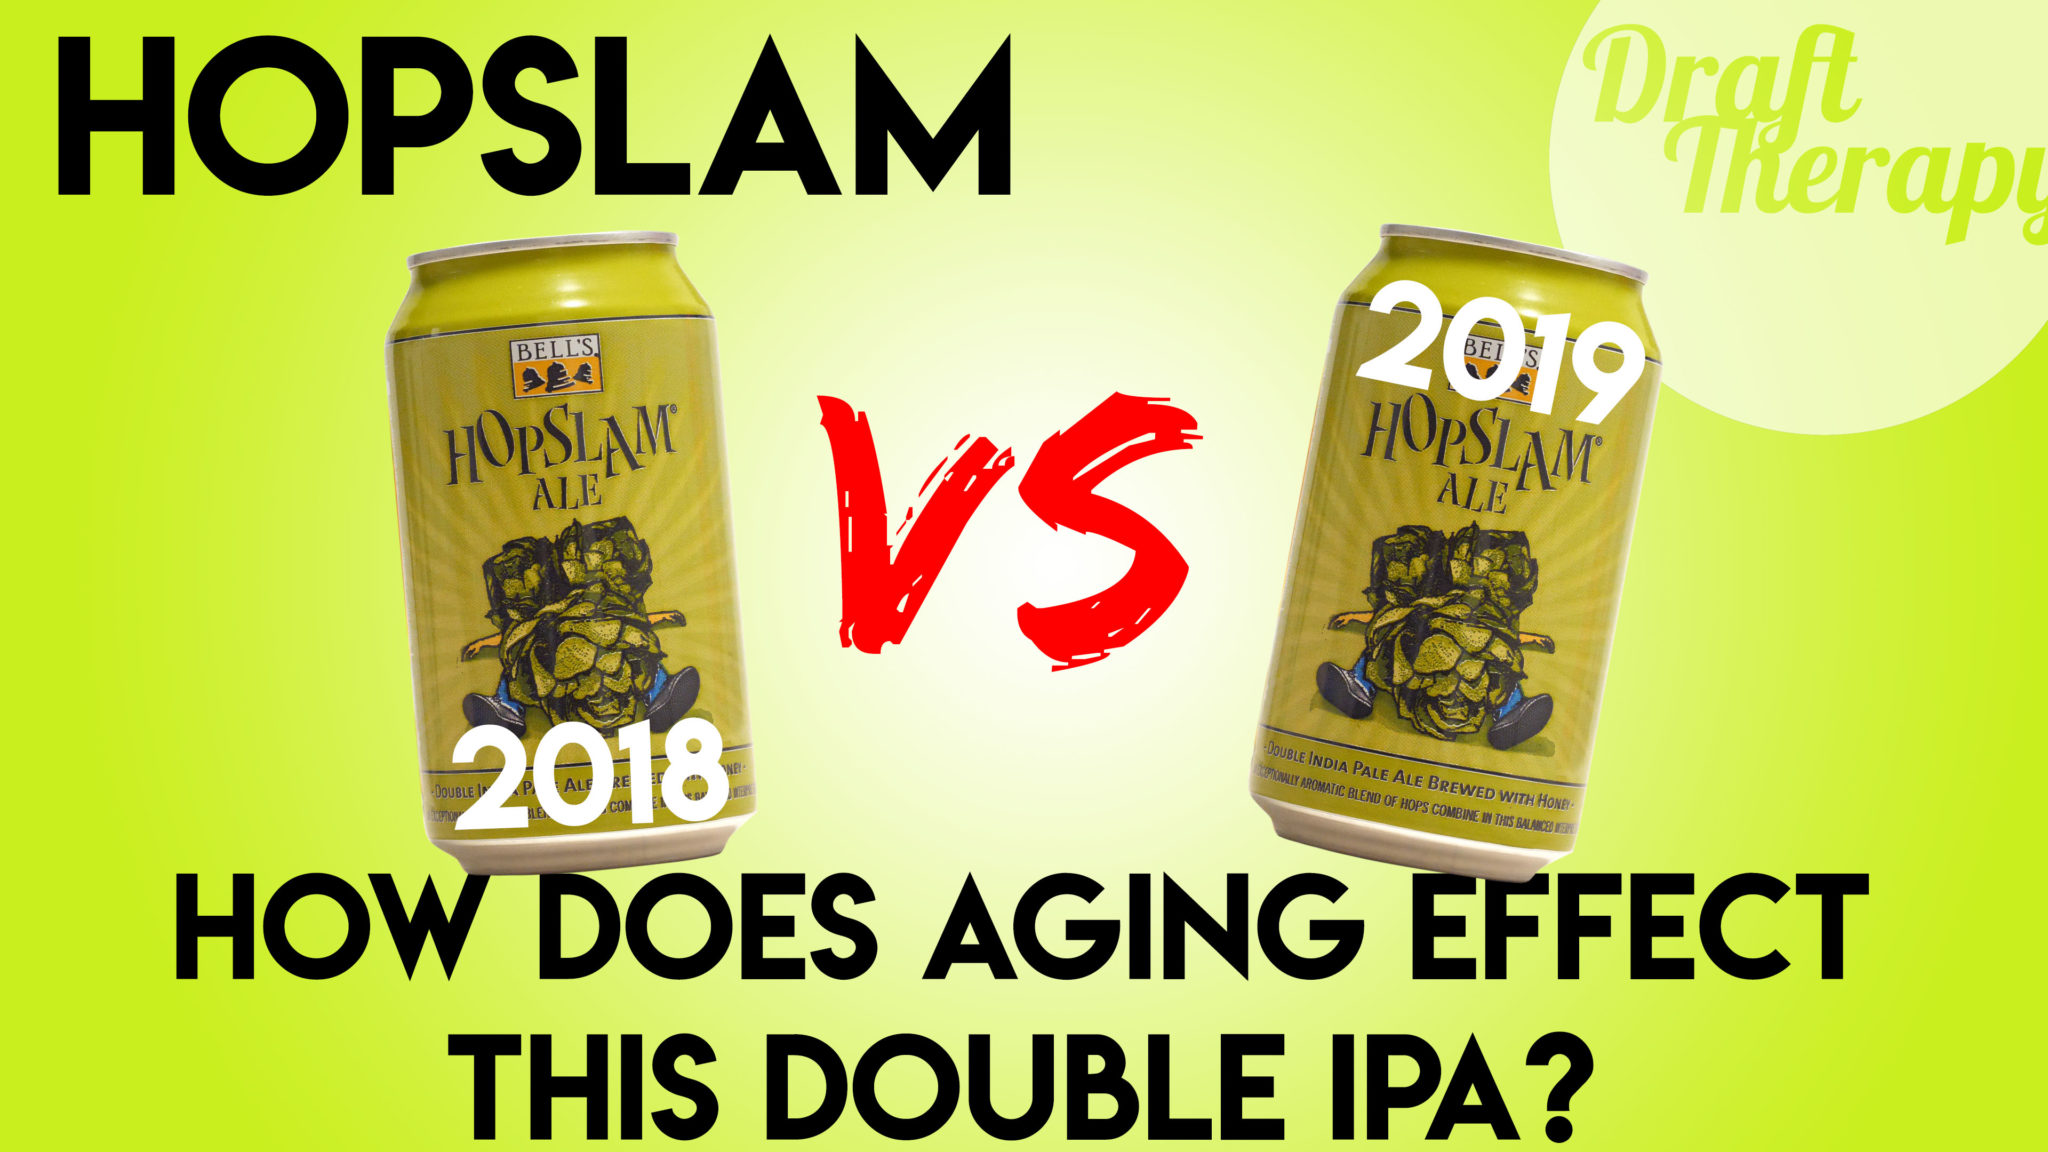 Hopslam Old Vs New – How Does Aging a Year Effect this Double IPA?